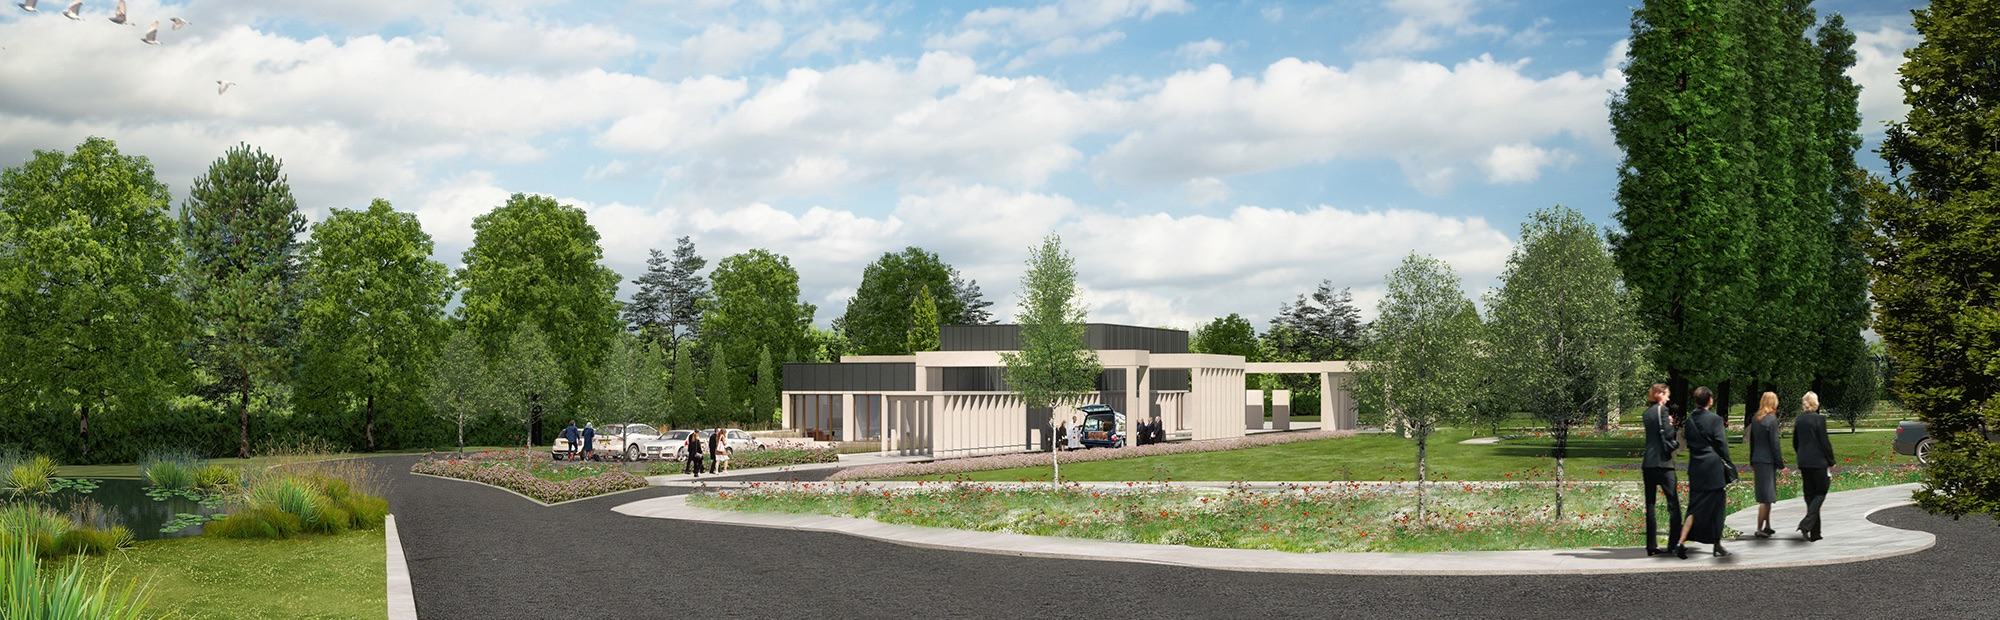 Hinckley and Bosworth Crematorium Design and Development